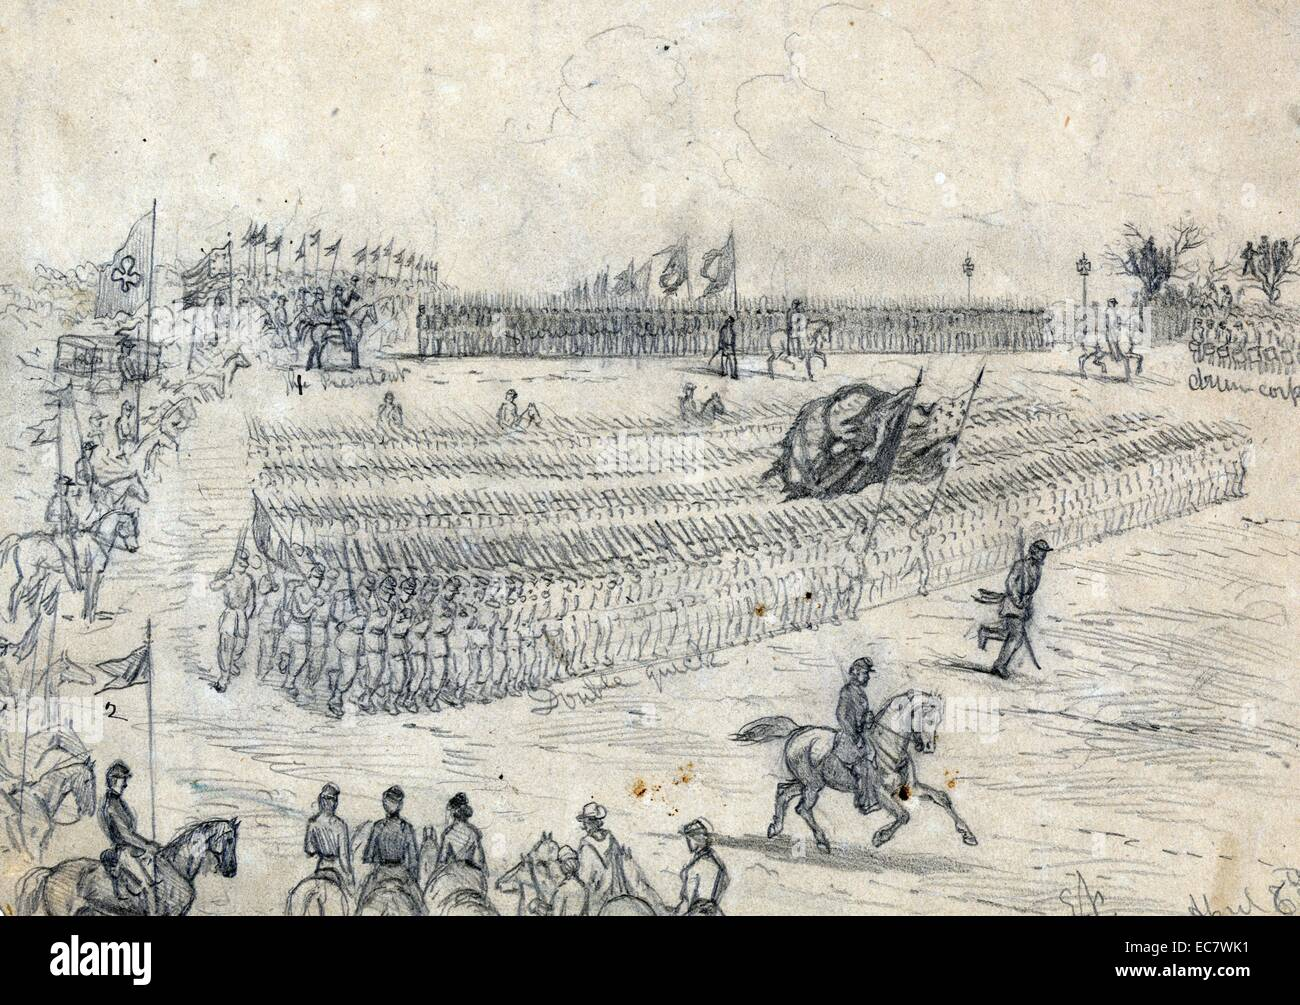 Review of the Army of the Potomac, commanded by Gen. Joe E. Hooker, by President Abraham Lincoln - Stock Image